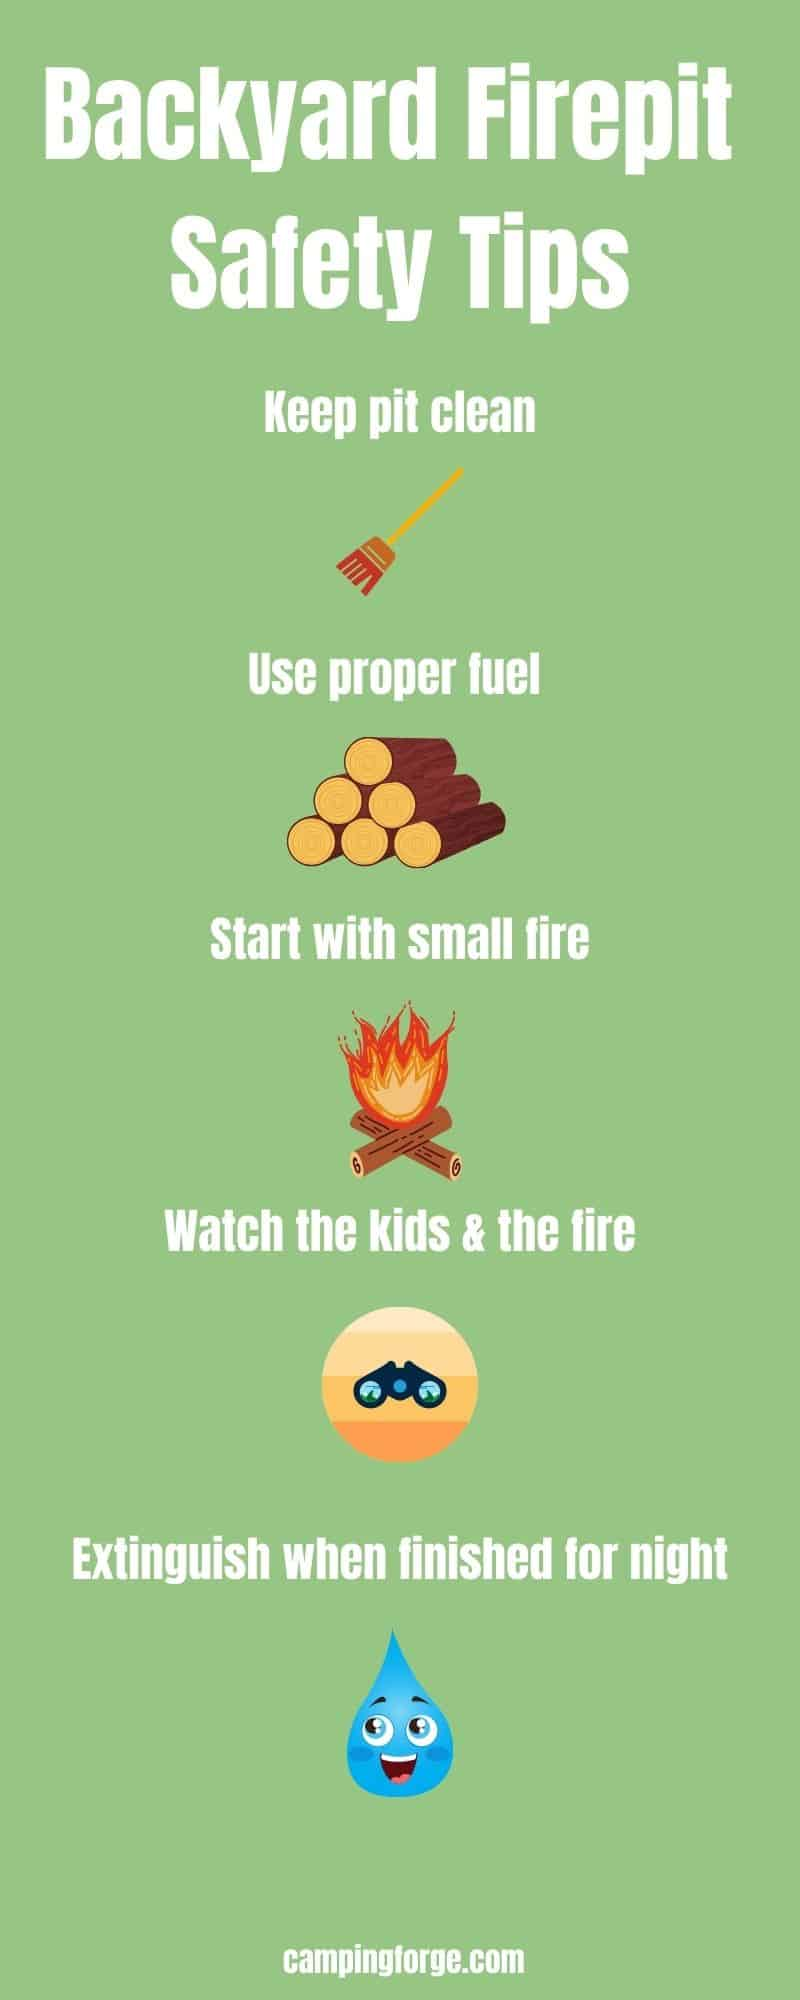 An infographic on how to use your backyard fire pit safely